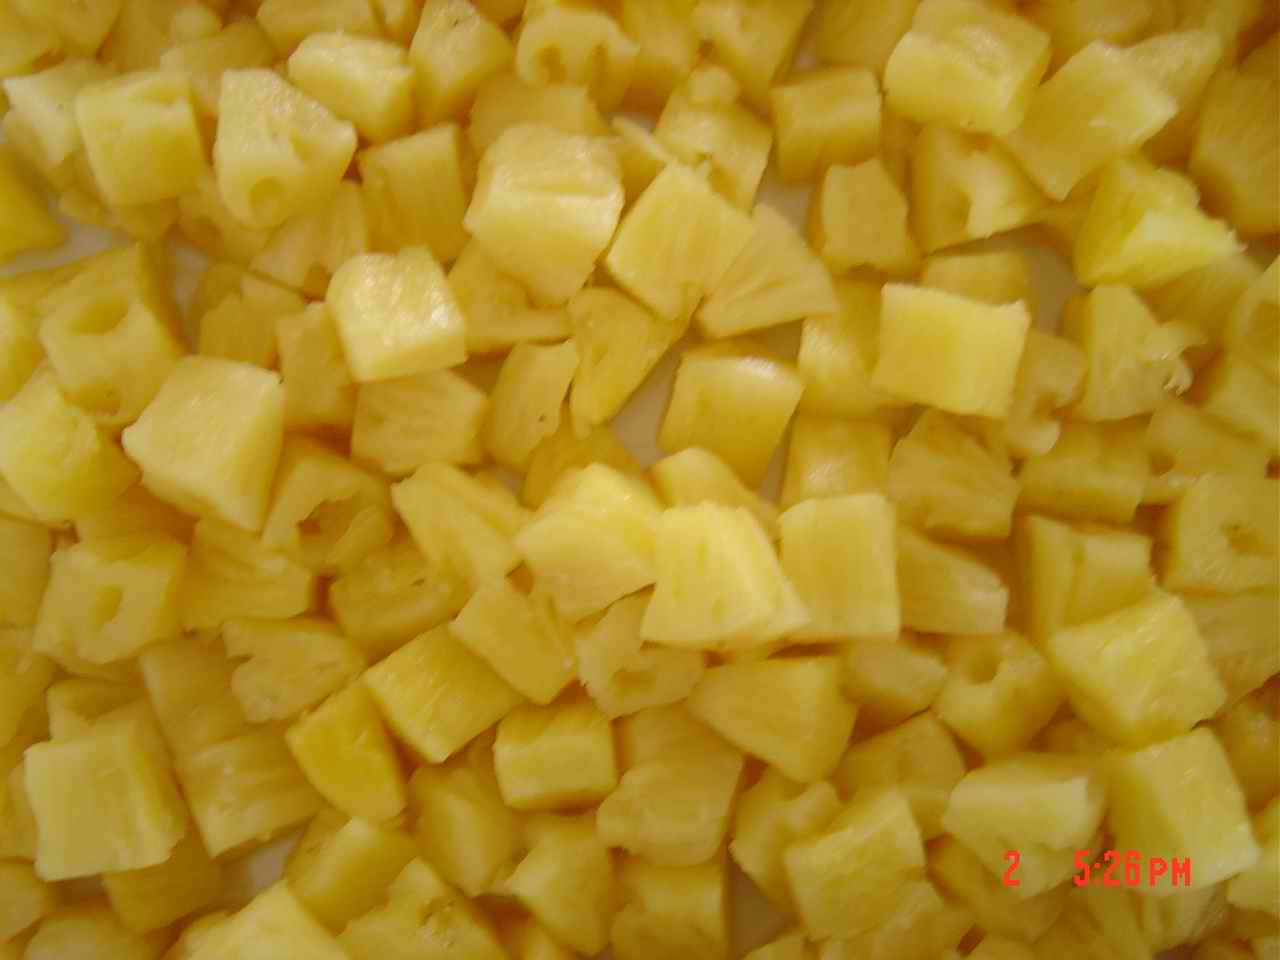 All Tin Sizes Canned Pineapples